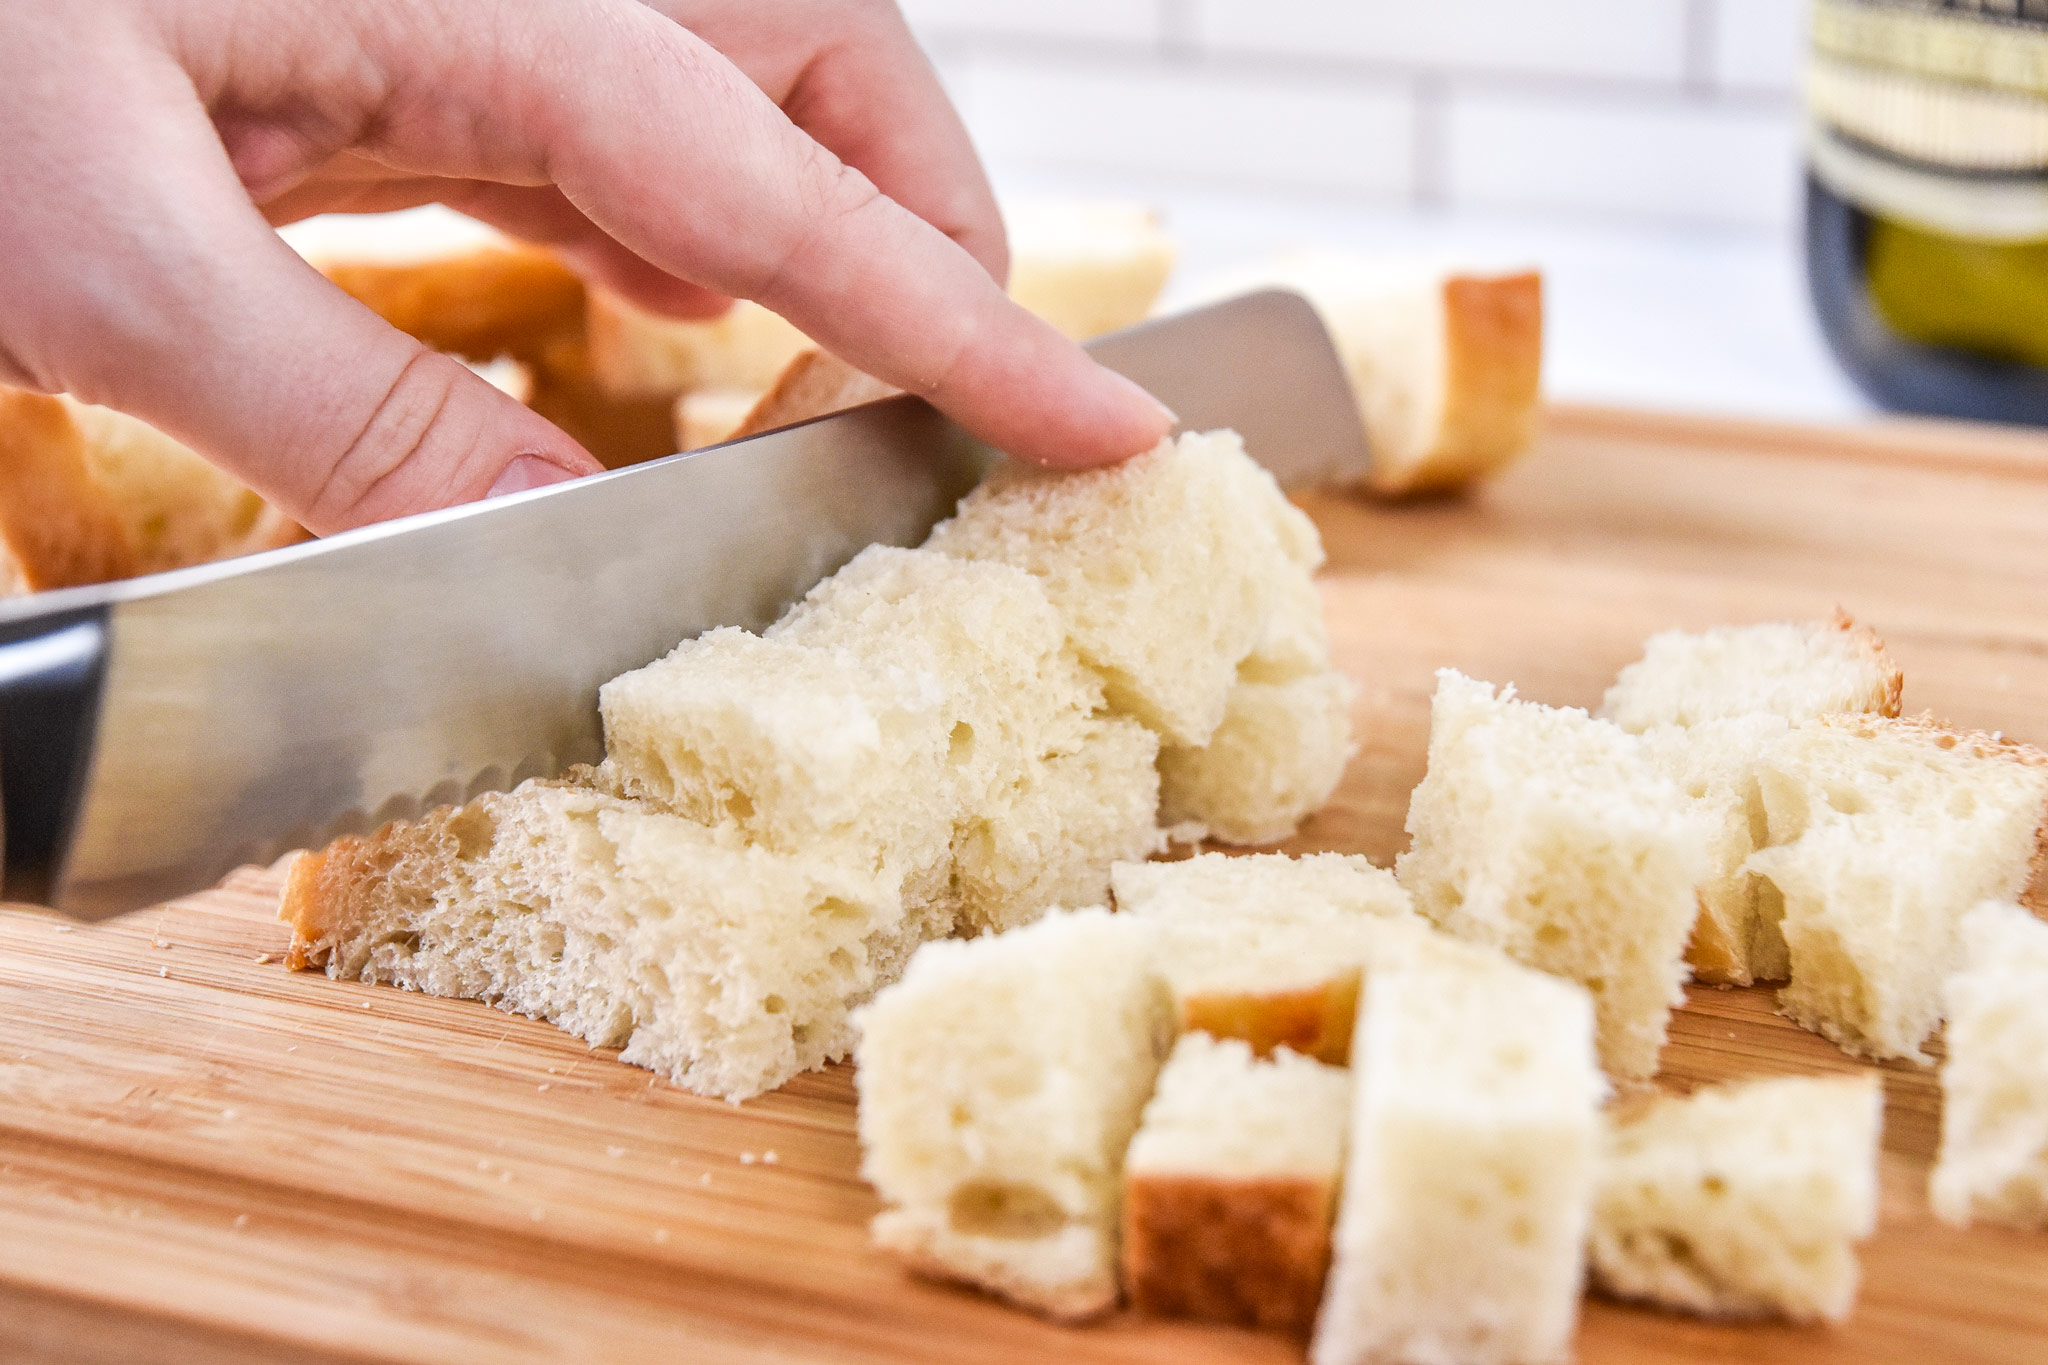 cutting sourdough bread into cubes for cruotons.